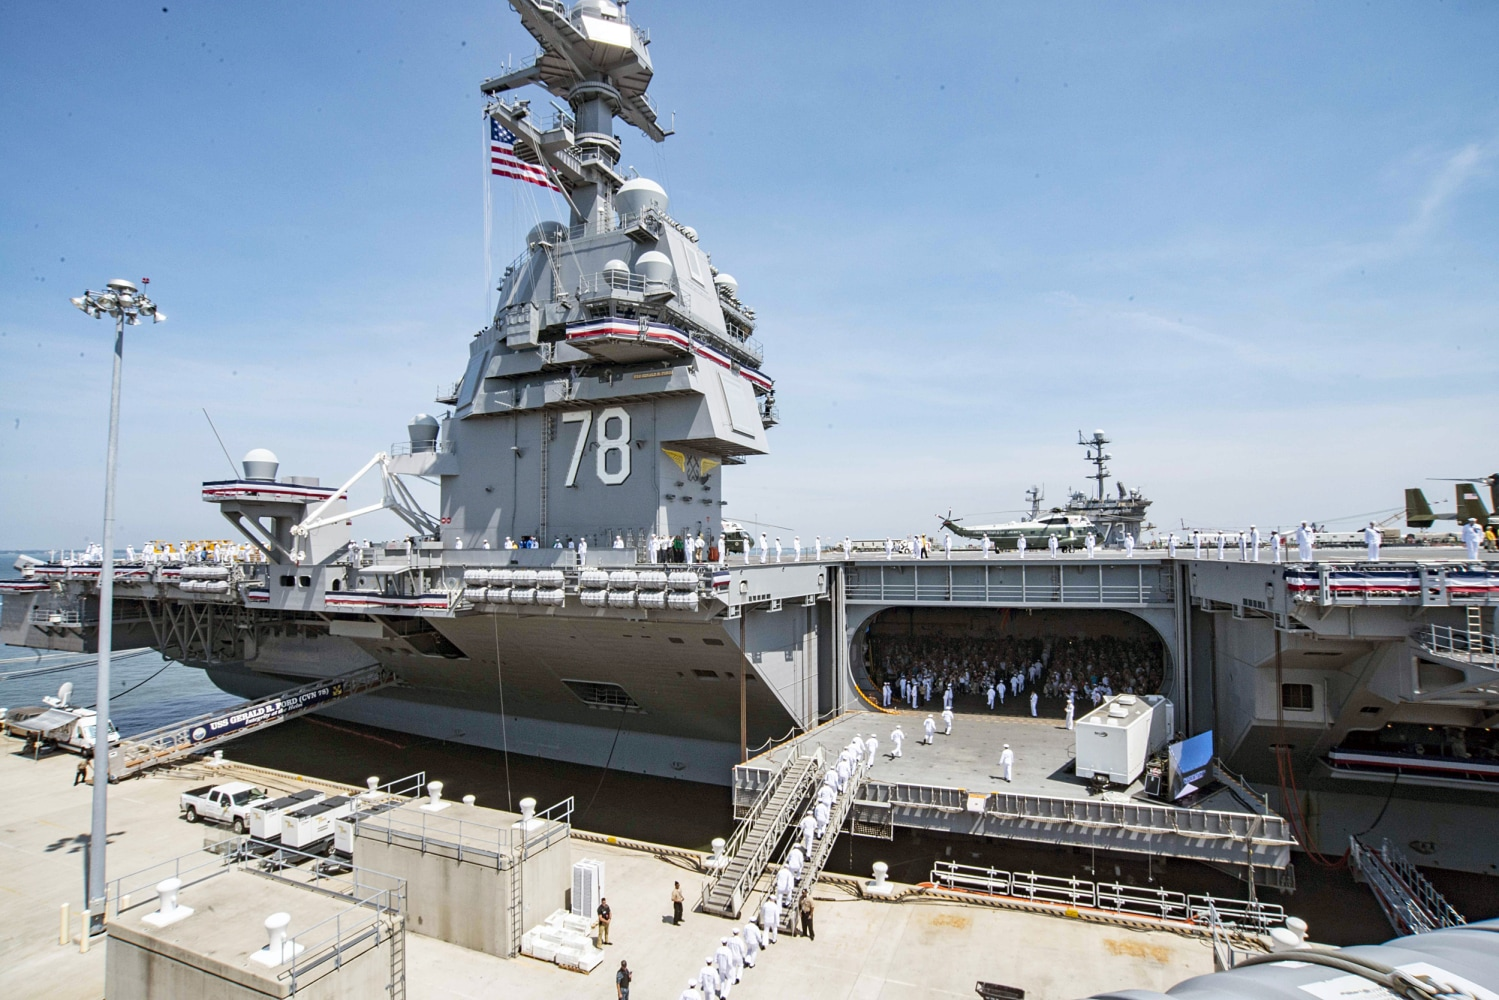 image us navy aircraft carrier the uss gerald r ford commissioned in. Cars Review. Best American Auto & Cars Review